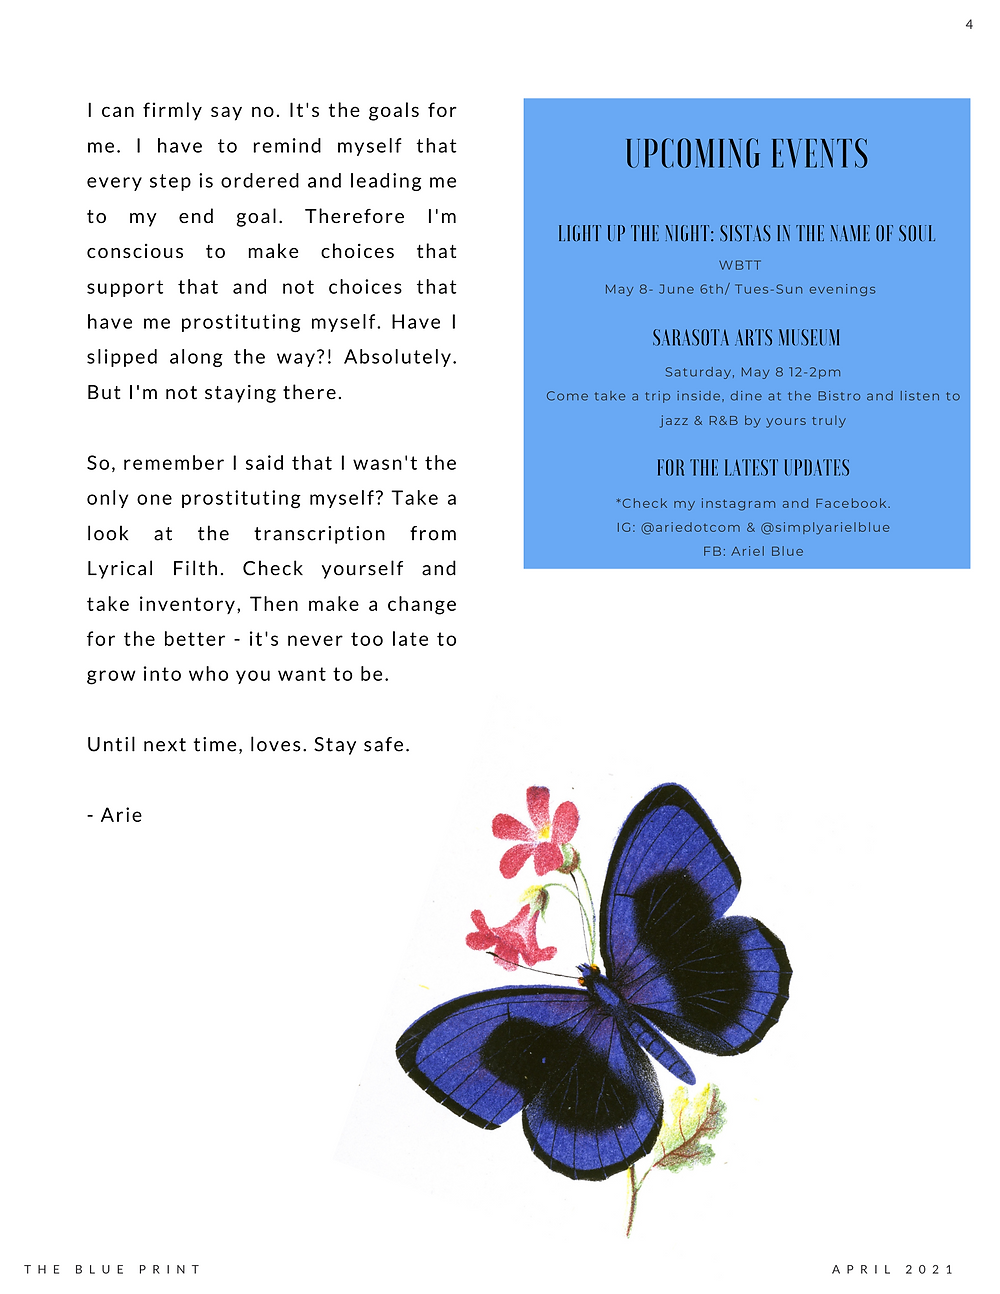 The Blue Print | April 2021 | Prostitution & Upcoming Events